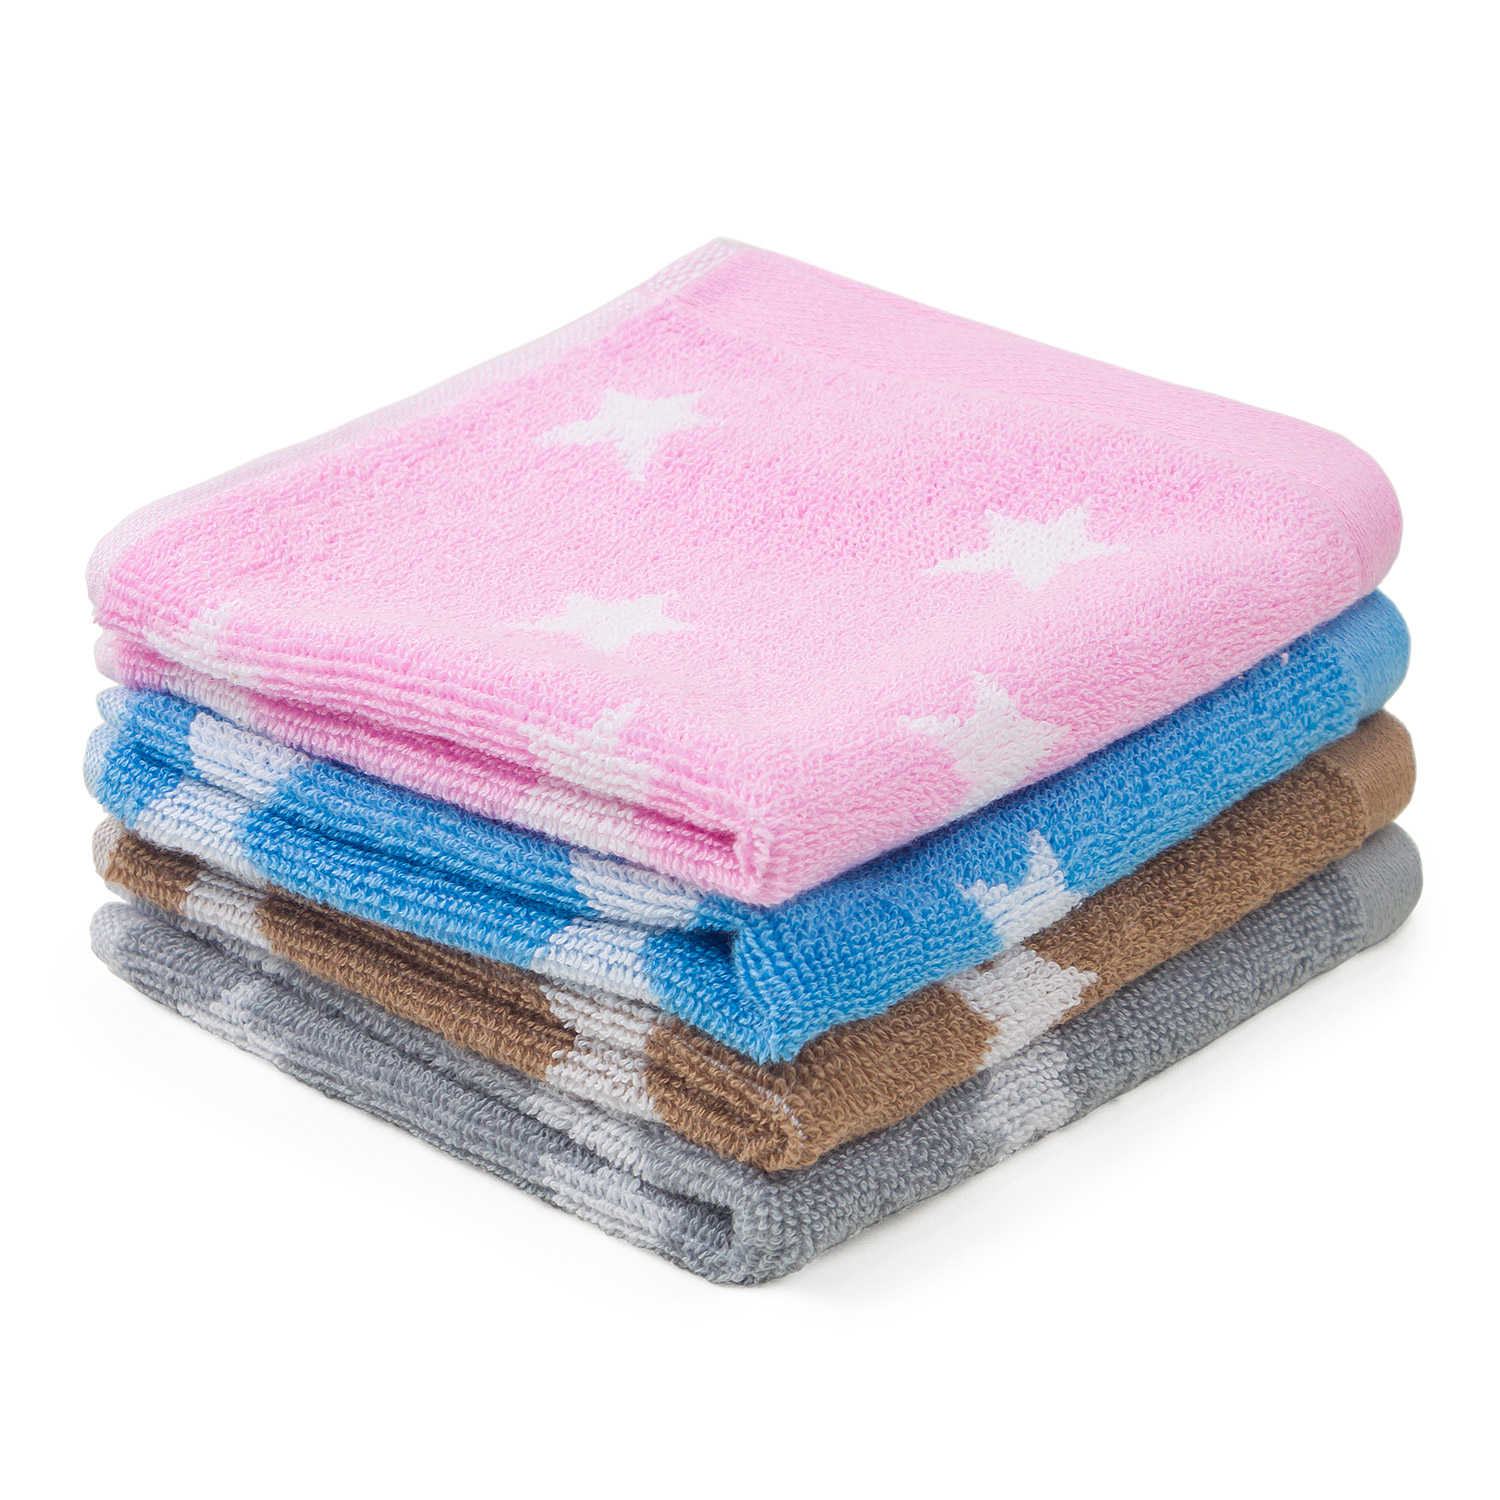 Go West Star Jacquard Towels